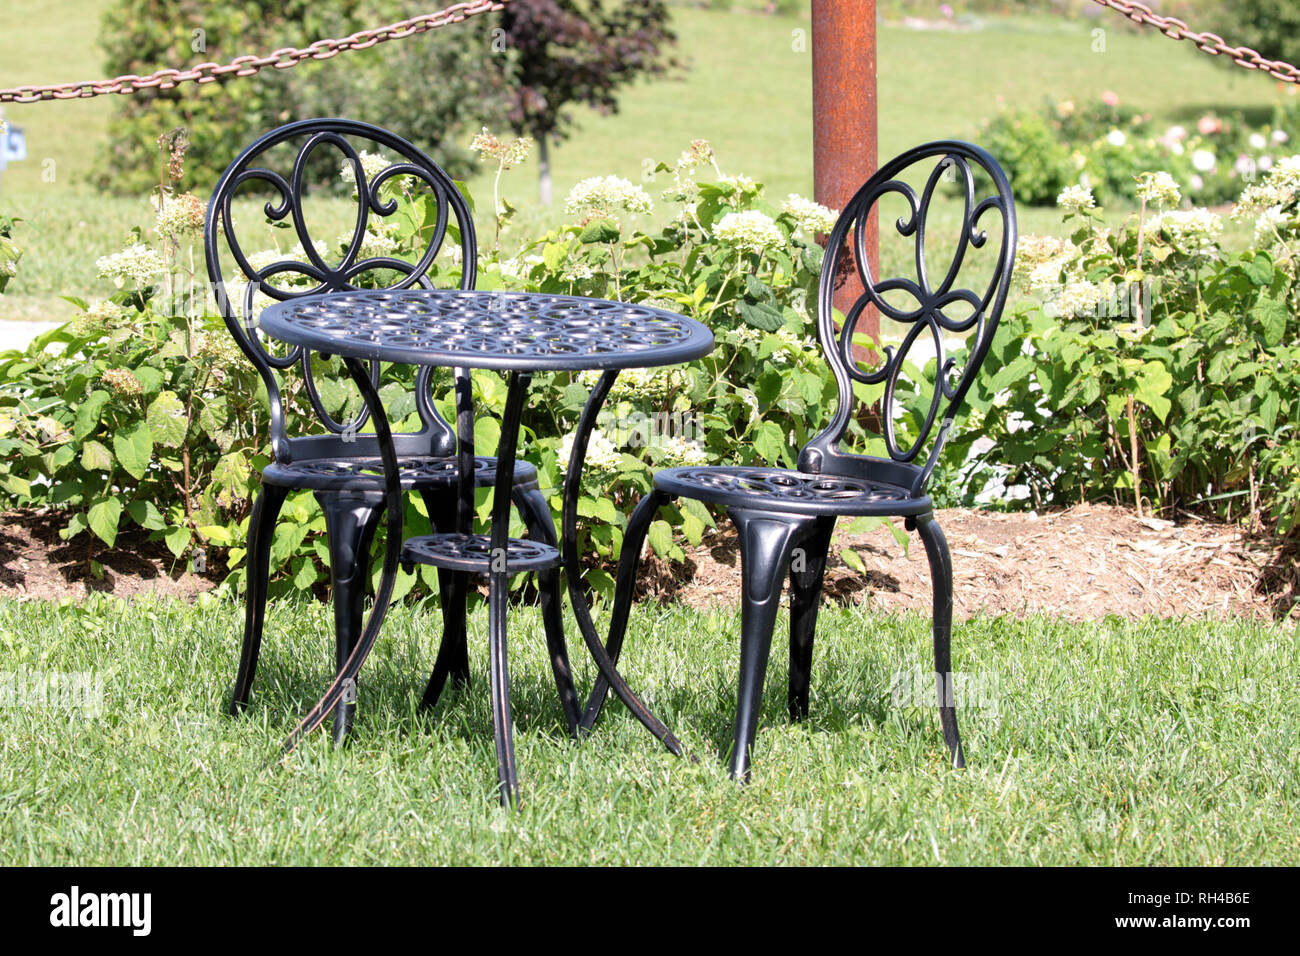 Wrought Iron Garden Furniture High Resolution Stock Photography